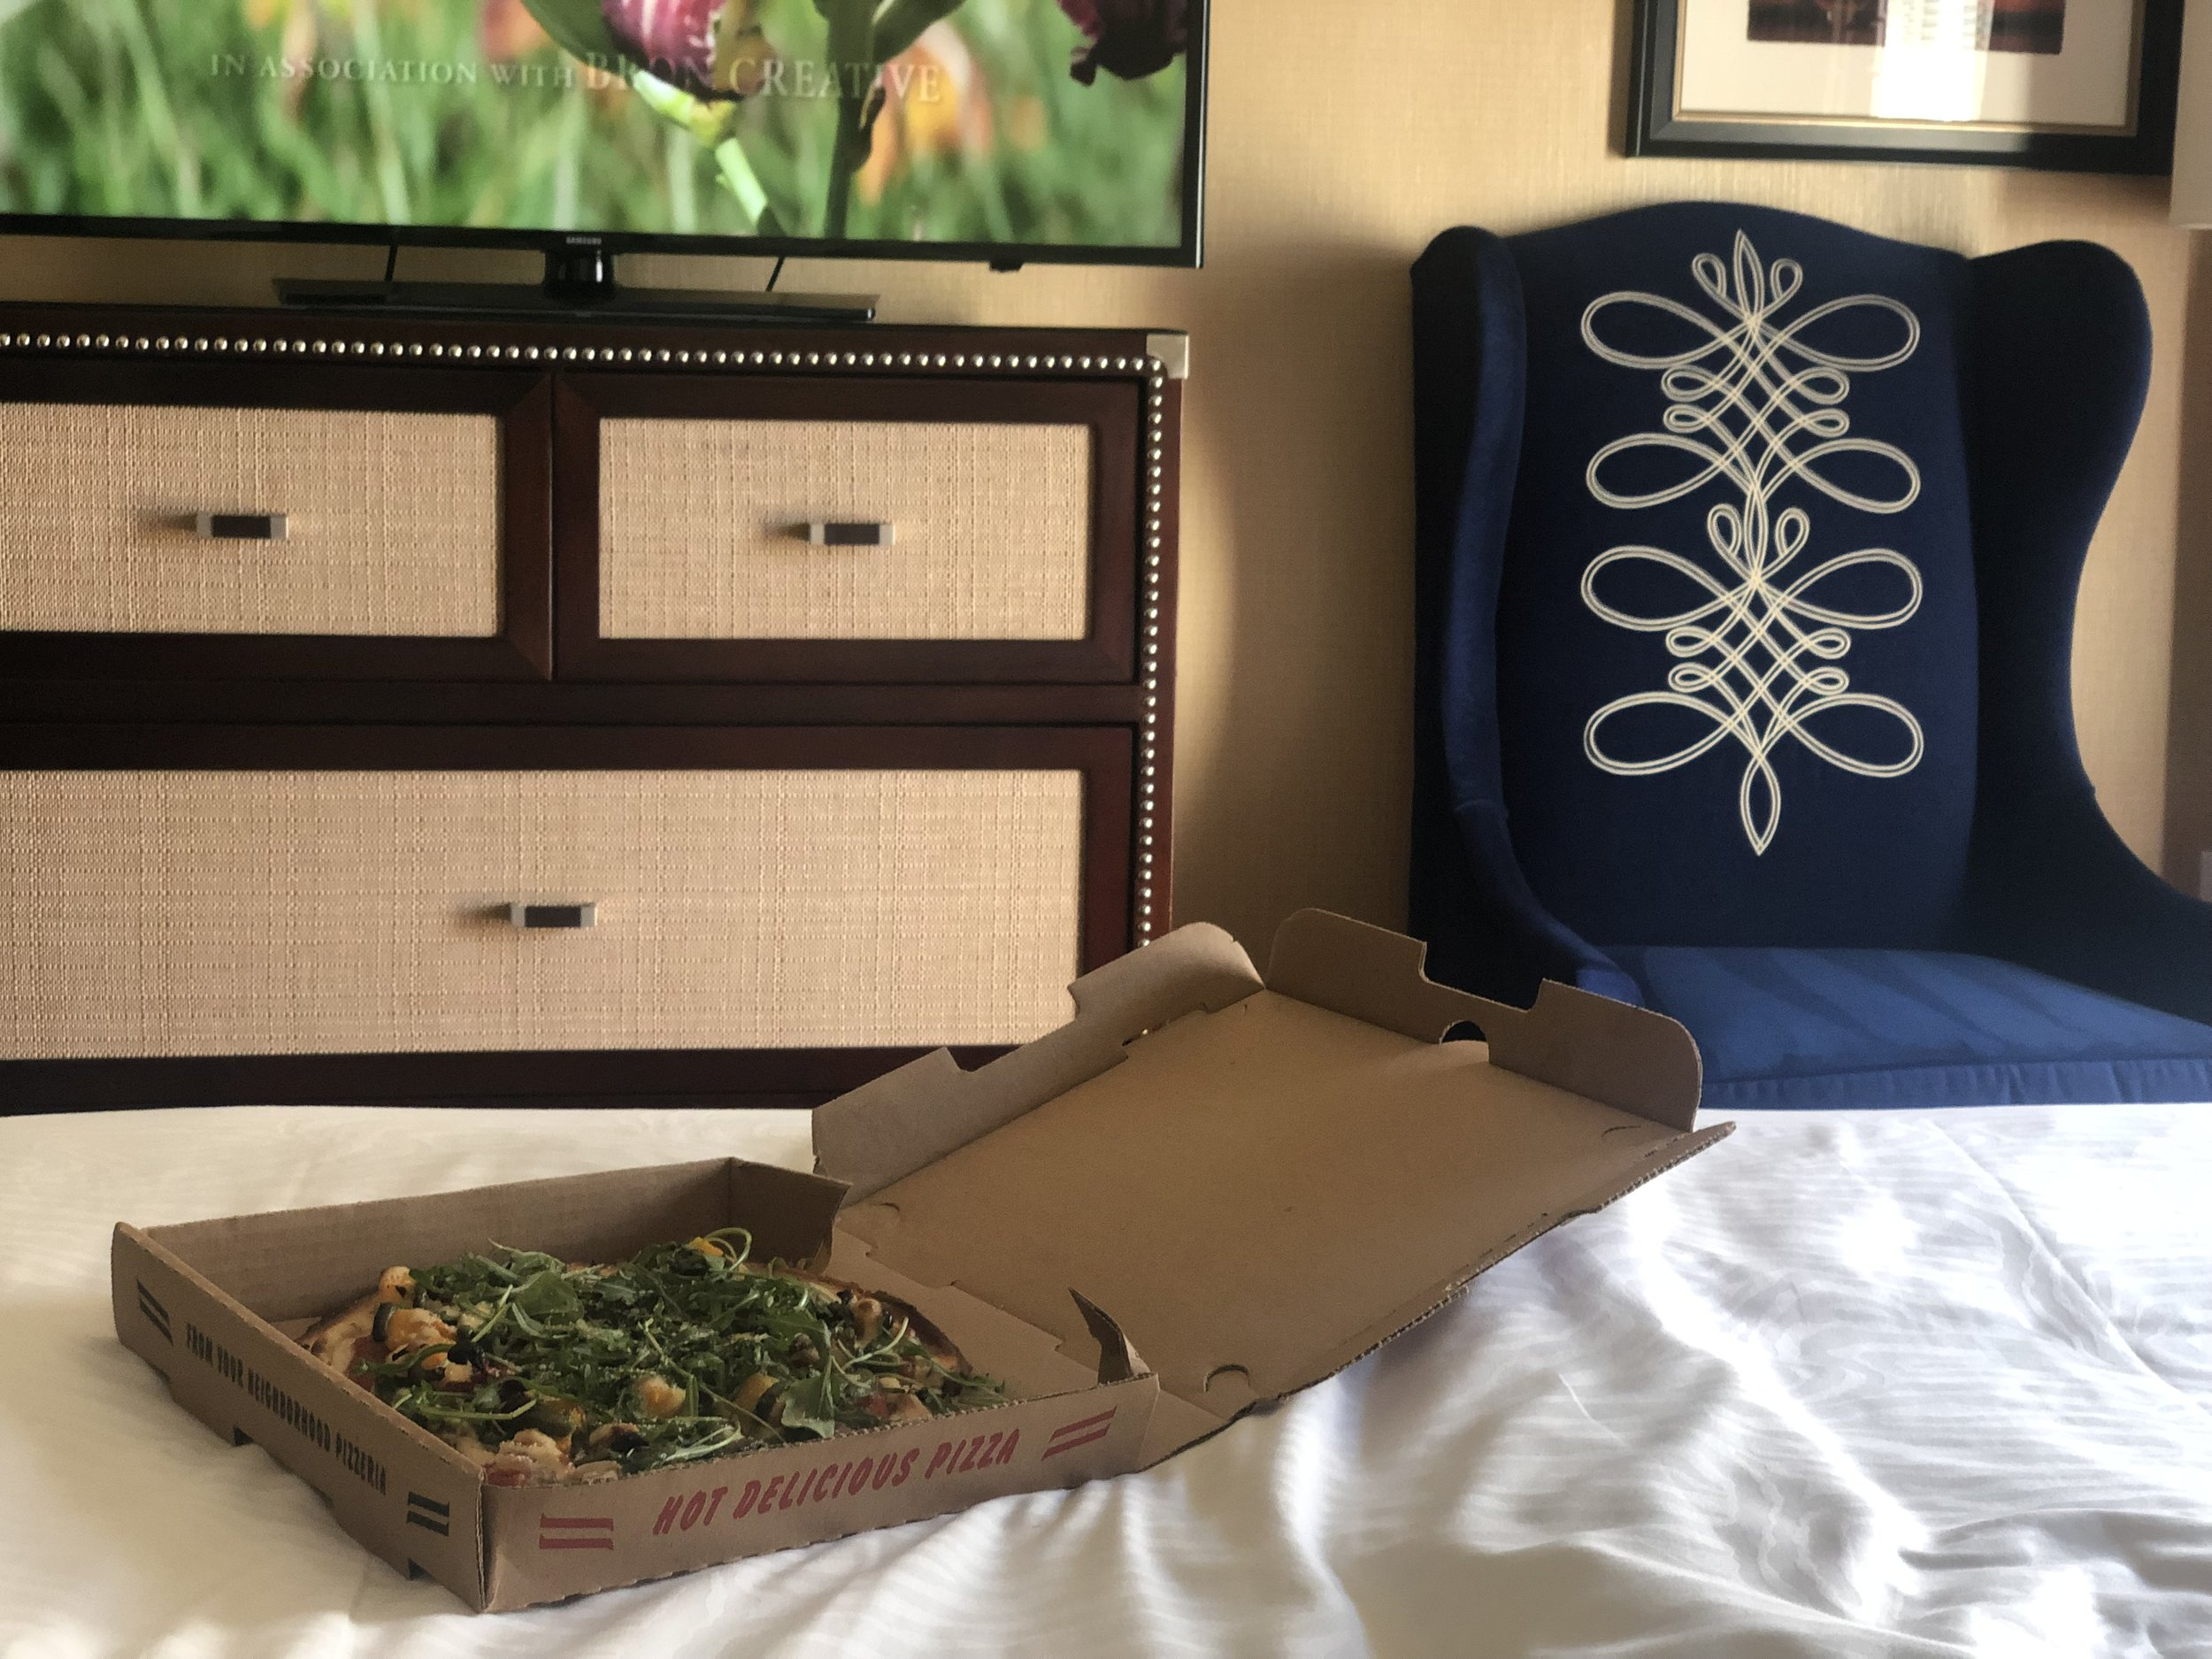 - vegan pizza & a movie in bedOne of my favorite things about travel and staying in a hotel, is comfortable bed and vegan takeout. I was super lucky to find a vegetarian & vegan called Zest Kitchen & Bar that was only a half mile from Hotel Monaco.They also offer delivery via Seamless (if you haven't signed up before, CLICK HERE for $12 off your first order of $15 or more)